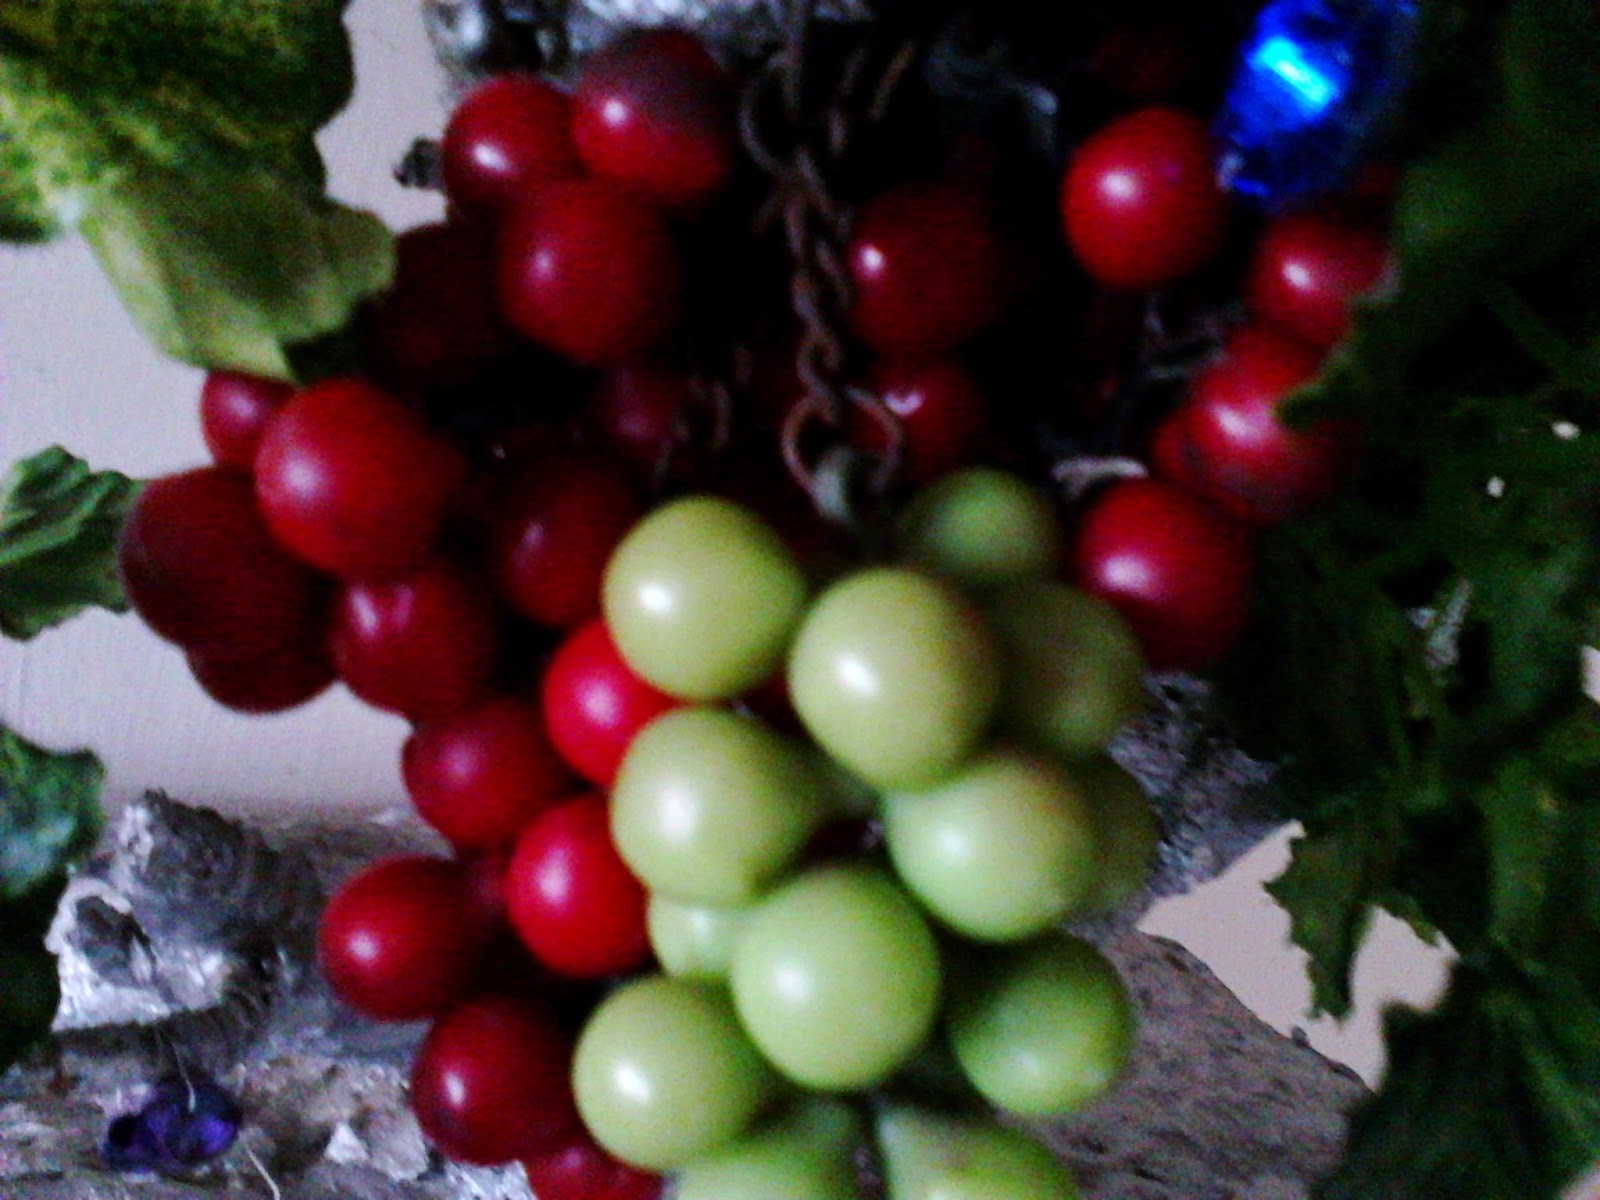 Feng Shui Simple Cures Feng Shui Wealth Fruits Grapes Cherries And Pomegranates Symbolism For